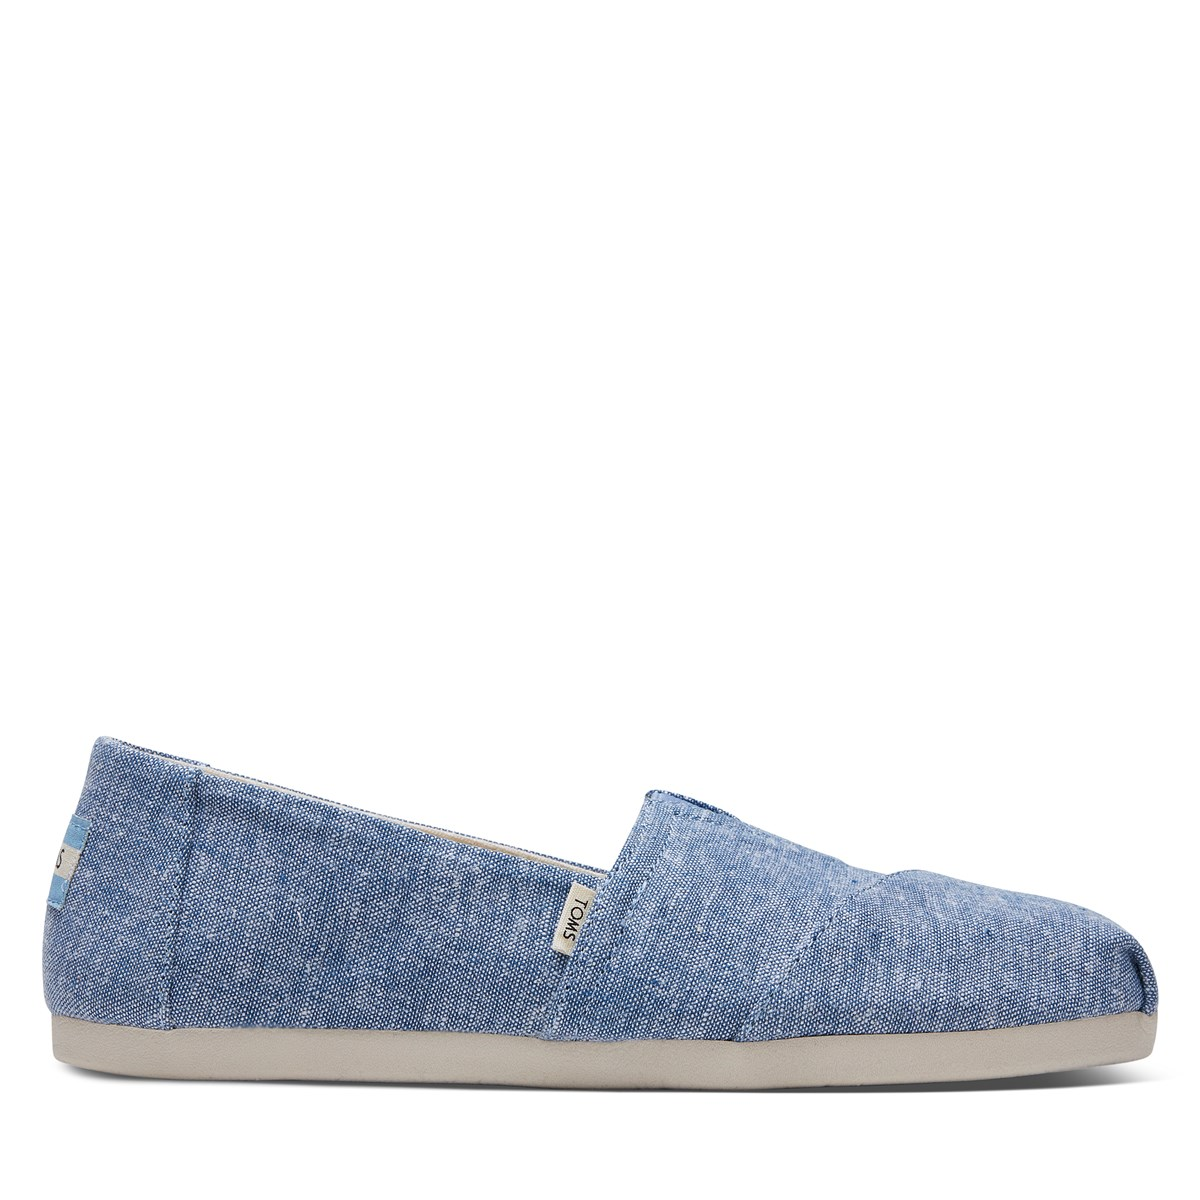 Women's Alpargata Slip-Ons in Blue